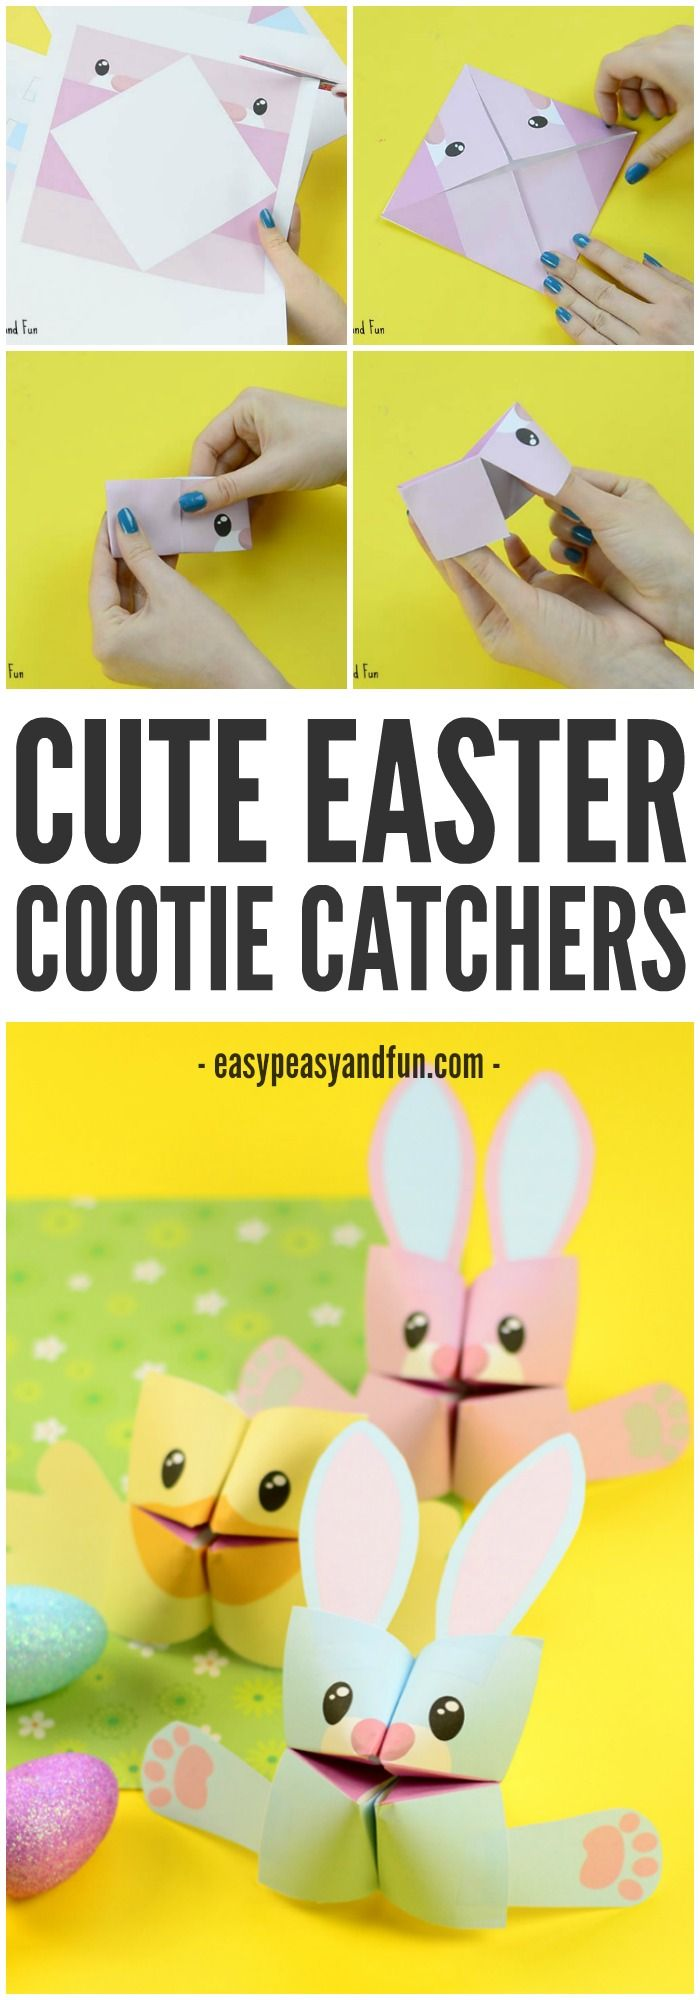 Cute Printable Easter Cootie Catchers